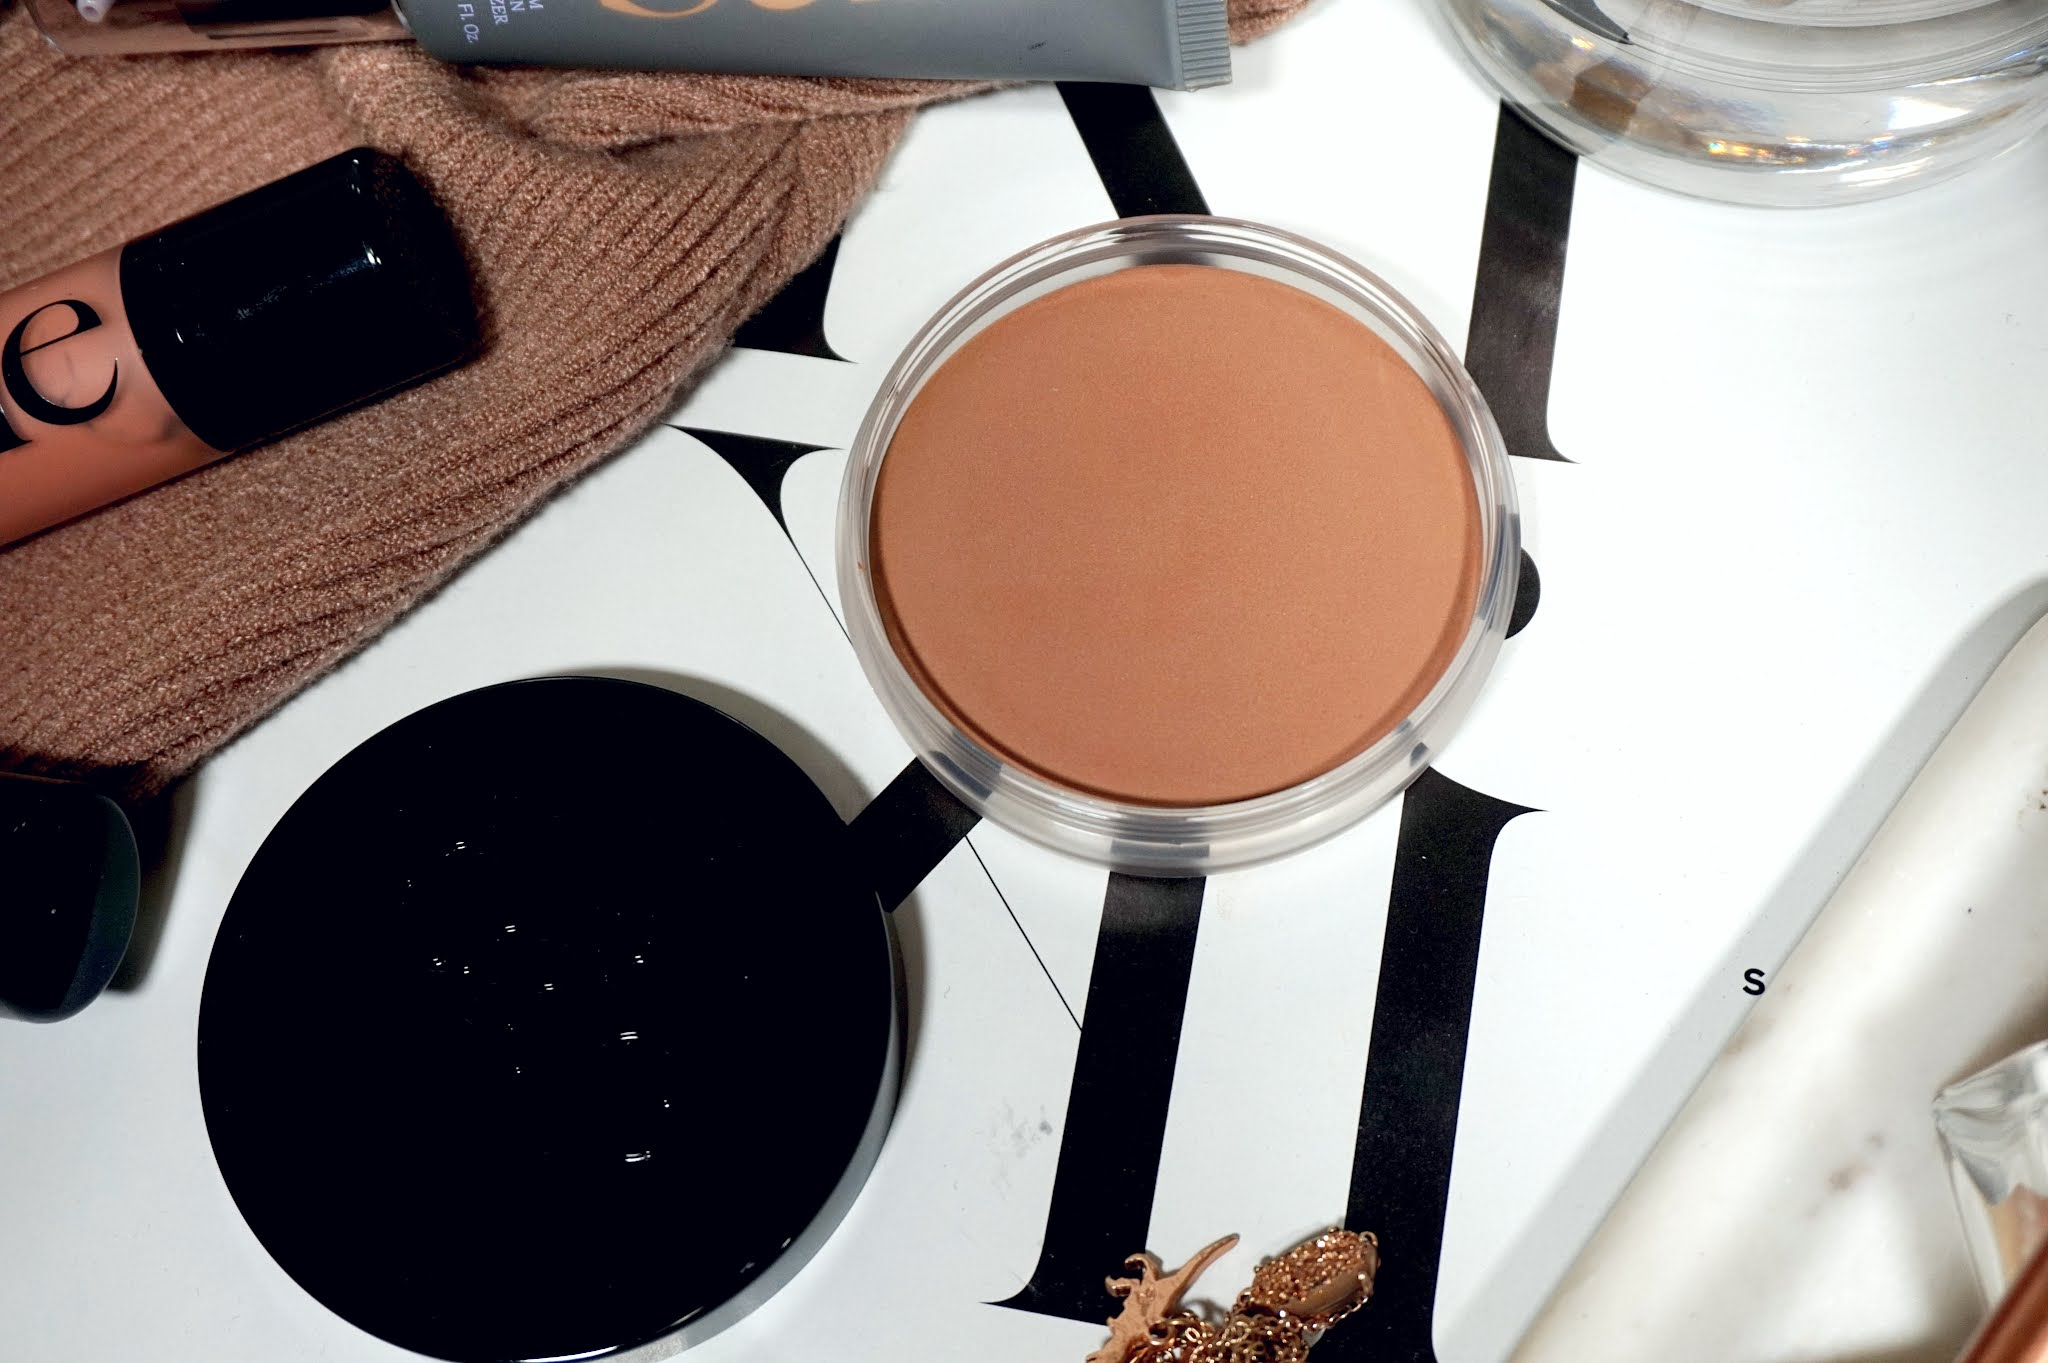 Saie Sun Melt Natural Cream Bronzer Review and Swatches